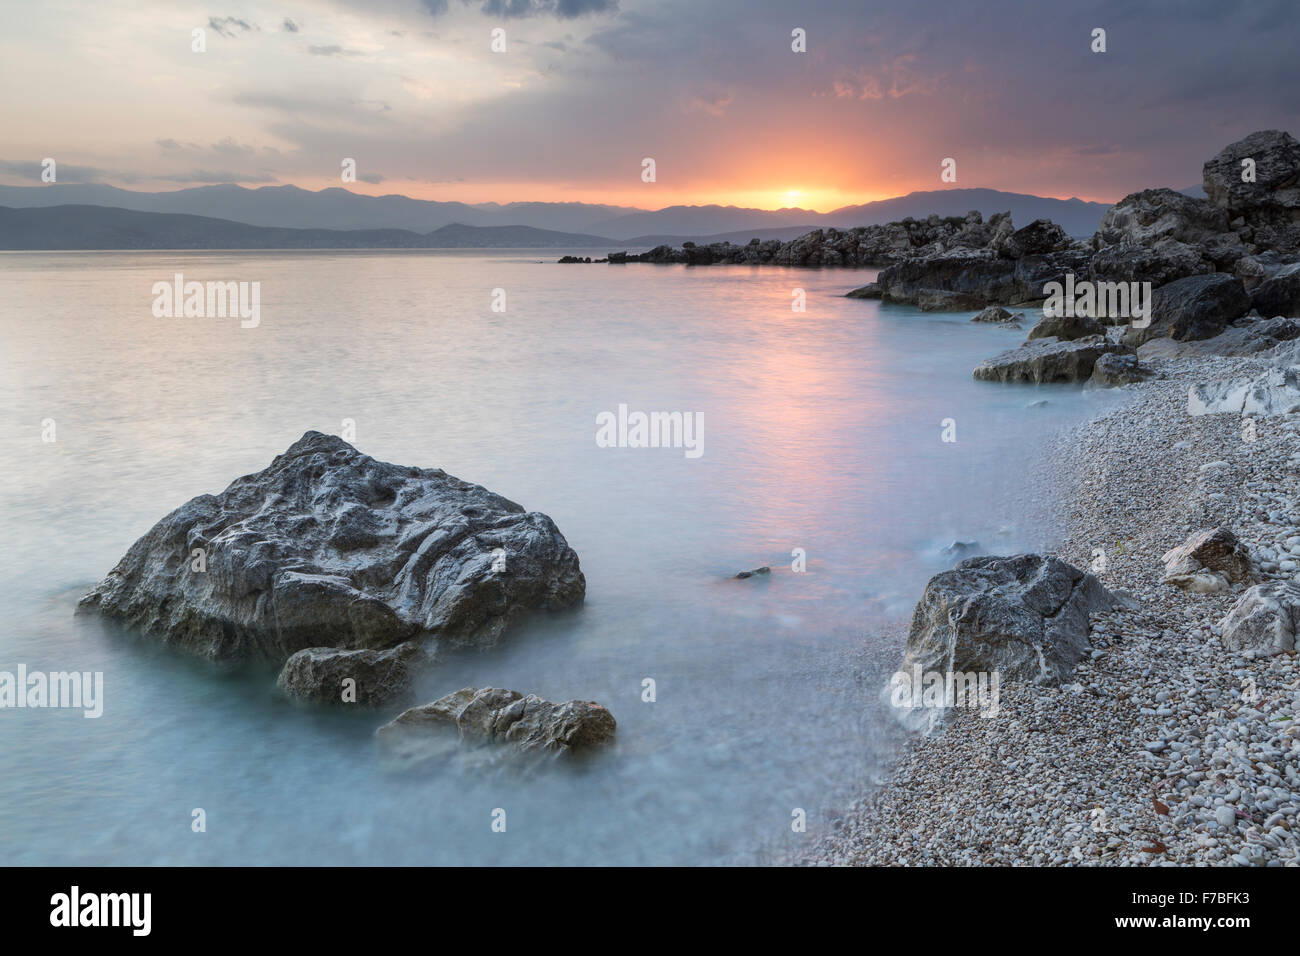 The pebbles and rocks on Bataria beach, Kassiopi, Corfu are lit up with the strong orange light of sunrise. Stock Photo